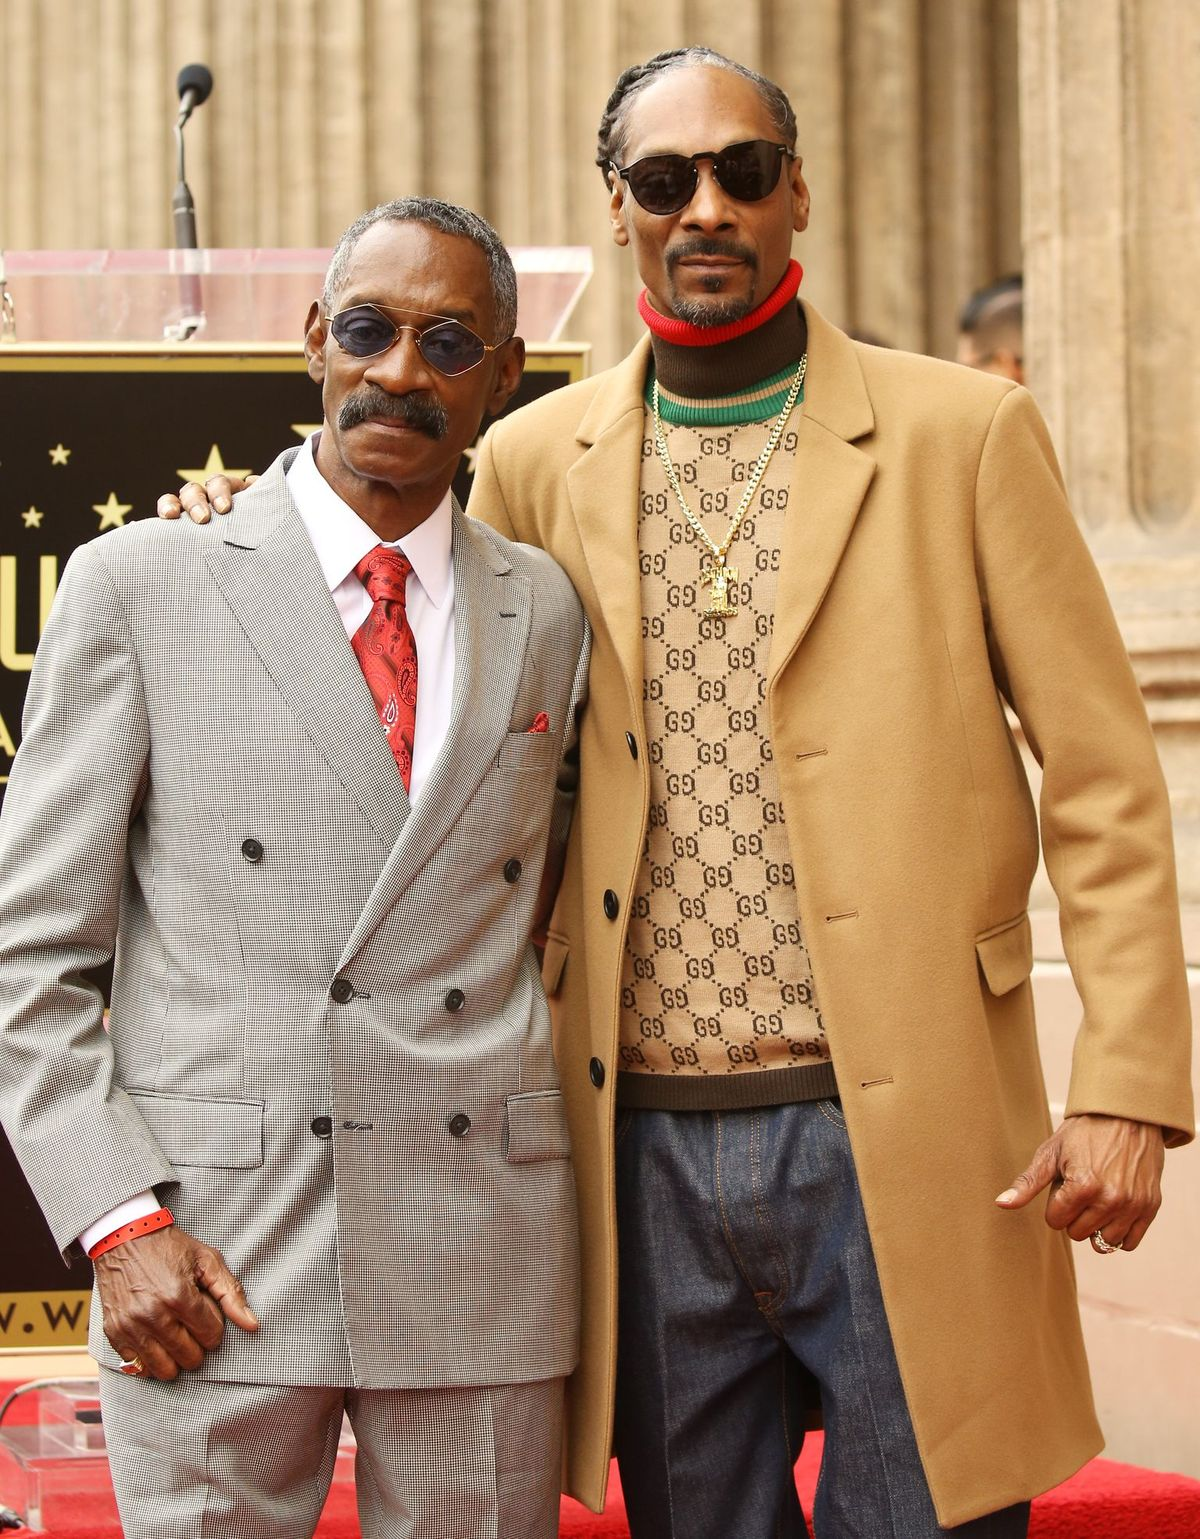 Snoop Dogg and his father at the ceremony honoring Snoop Dogg with a Star on The Hollywood Walk of Fame held on November 19, 2018 | Photo: Getty Images